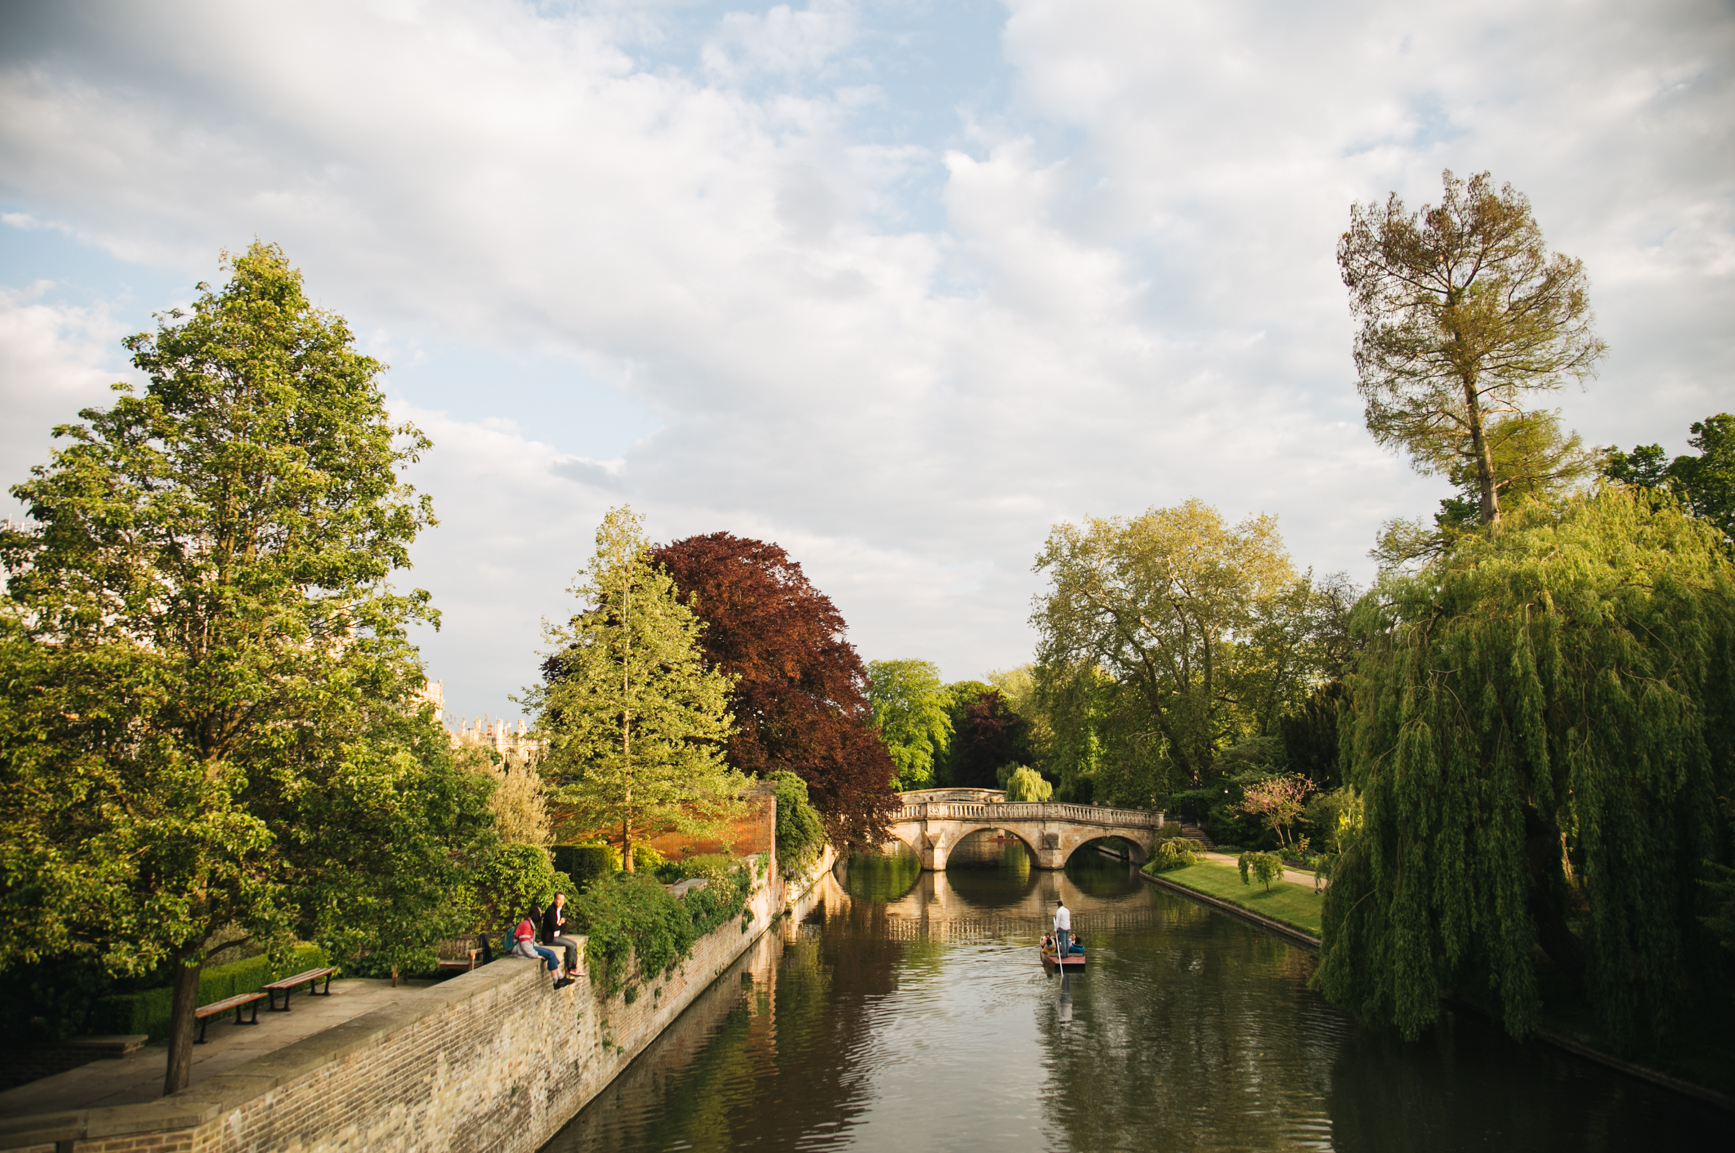 Punting-in-Cambridge-travel-blog-onmyway.jpg